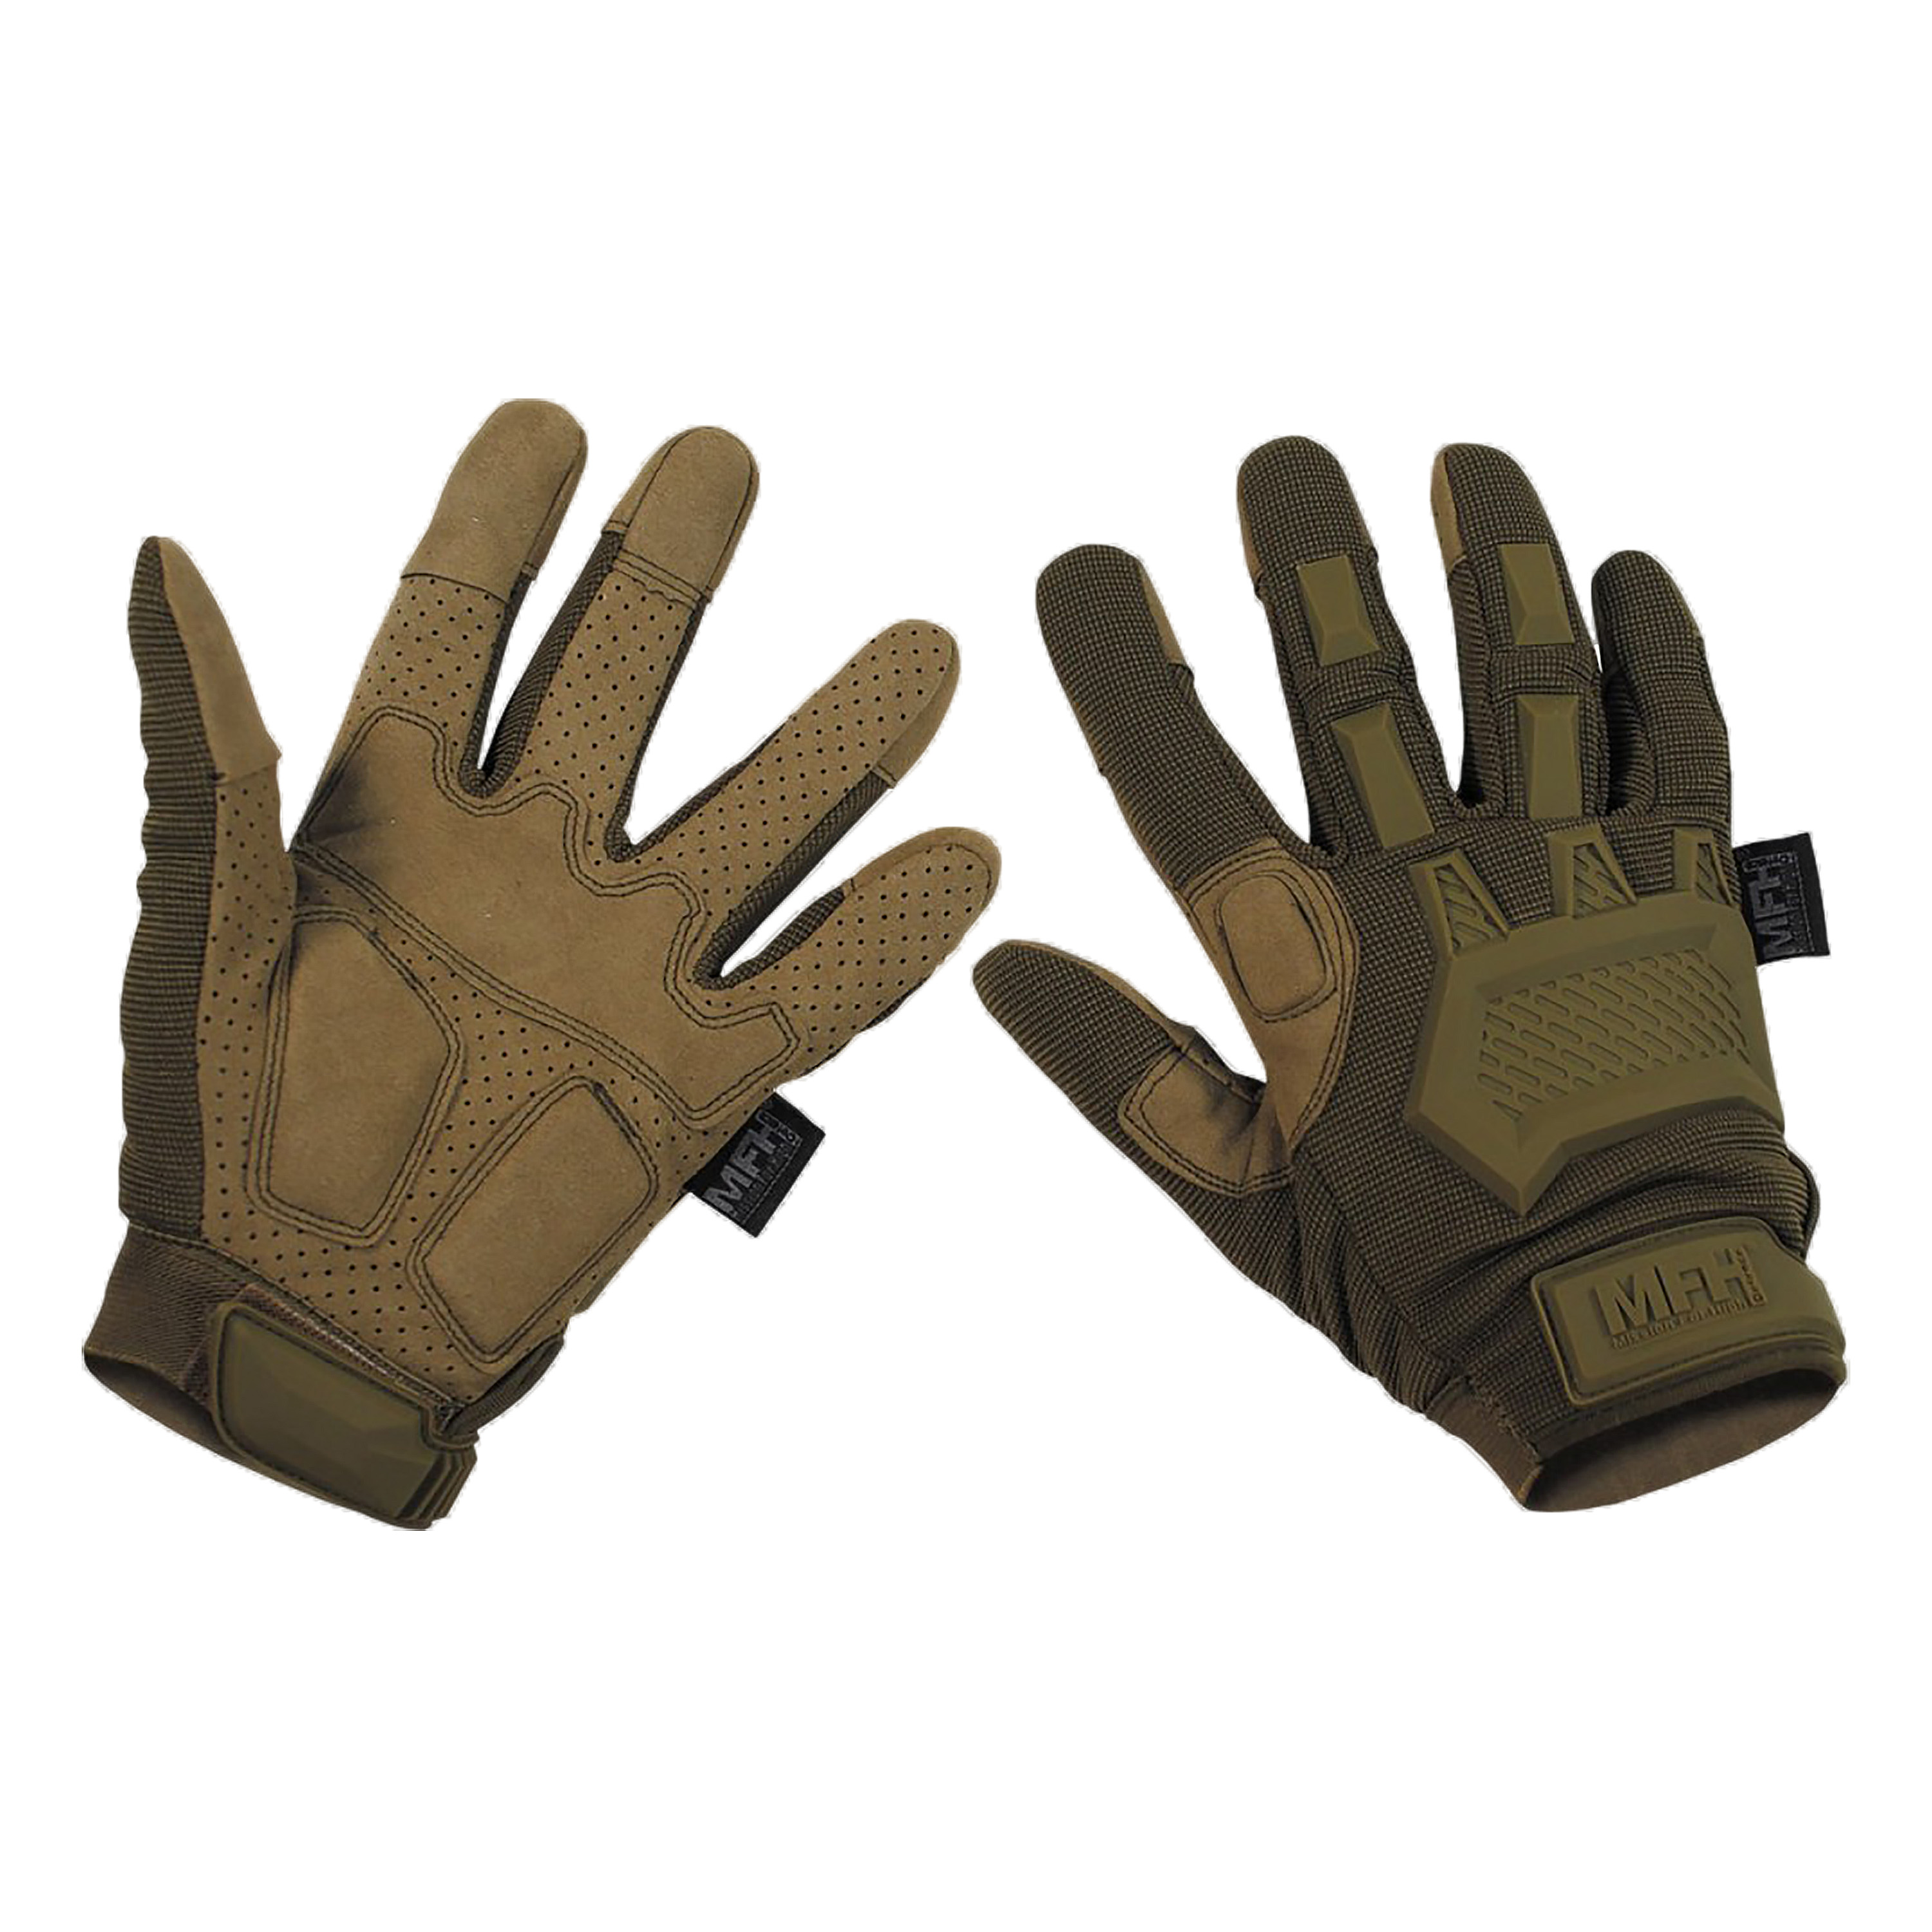 MFH Tactical Handschuhe Action coyote